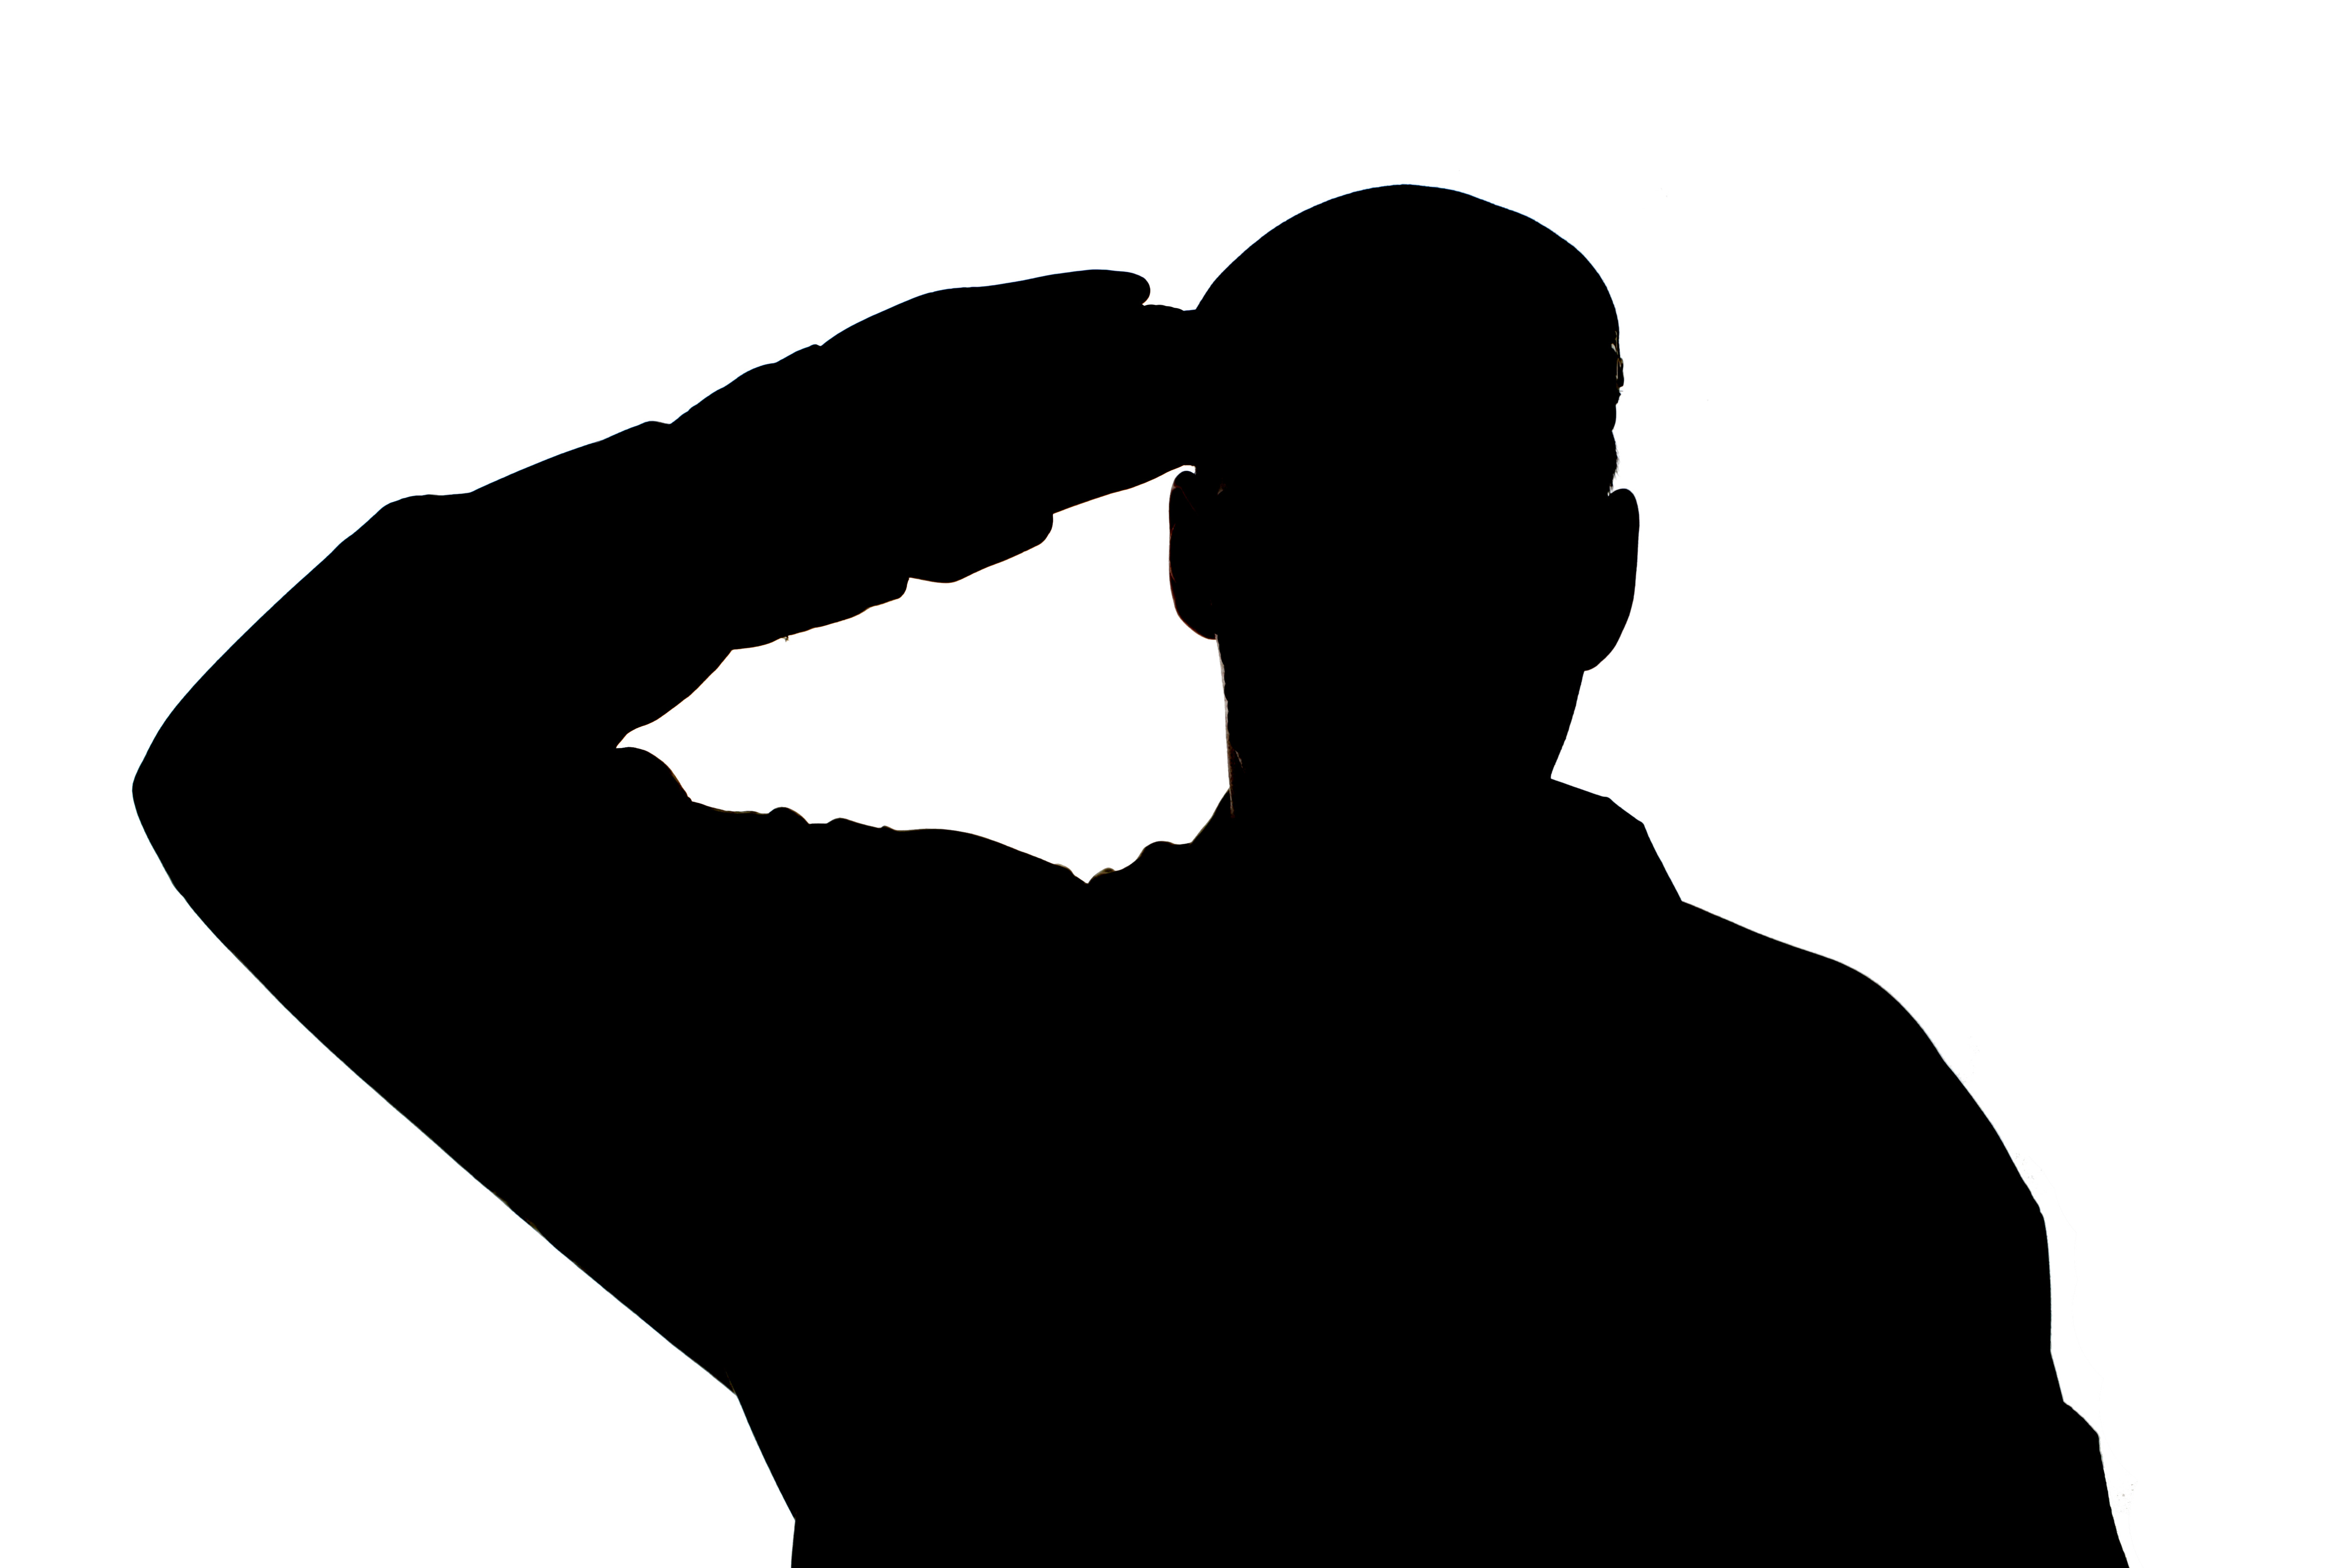 5616x3744 Army Soldier Silhouette Clipart